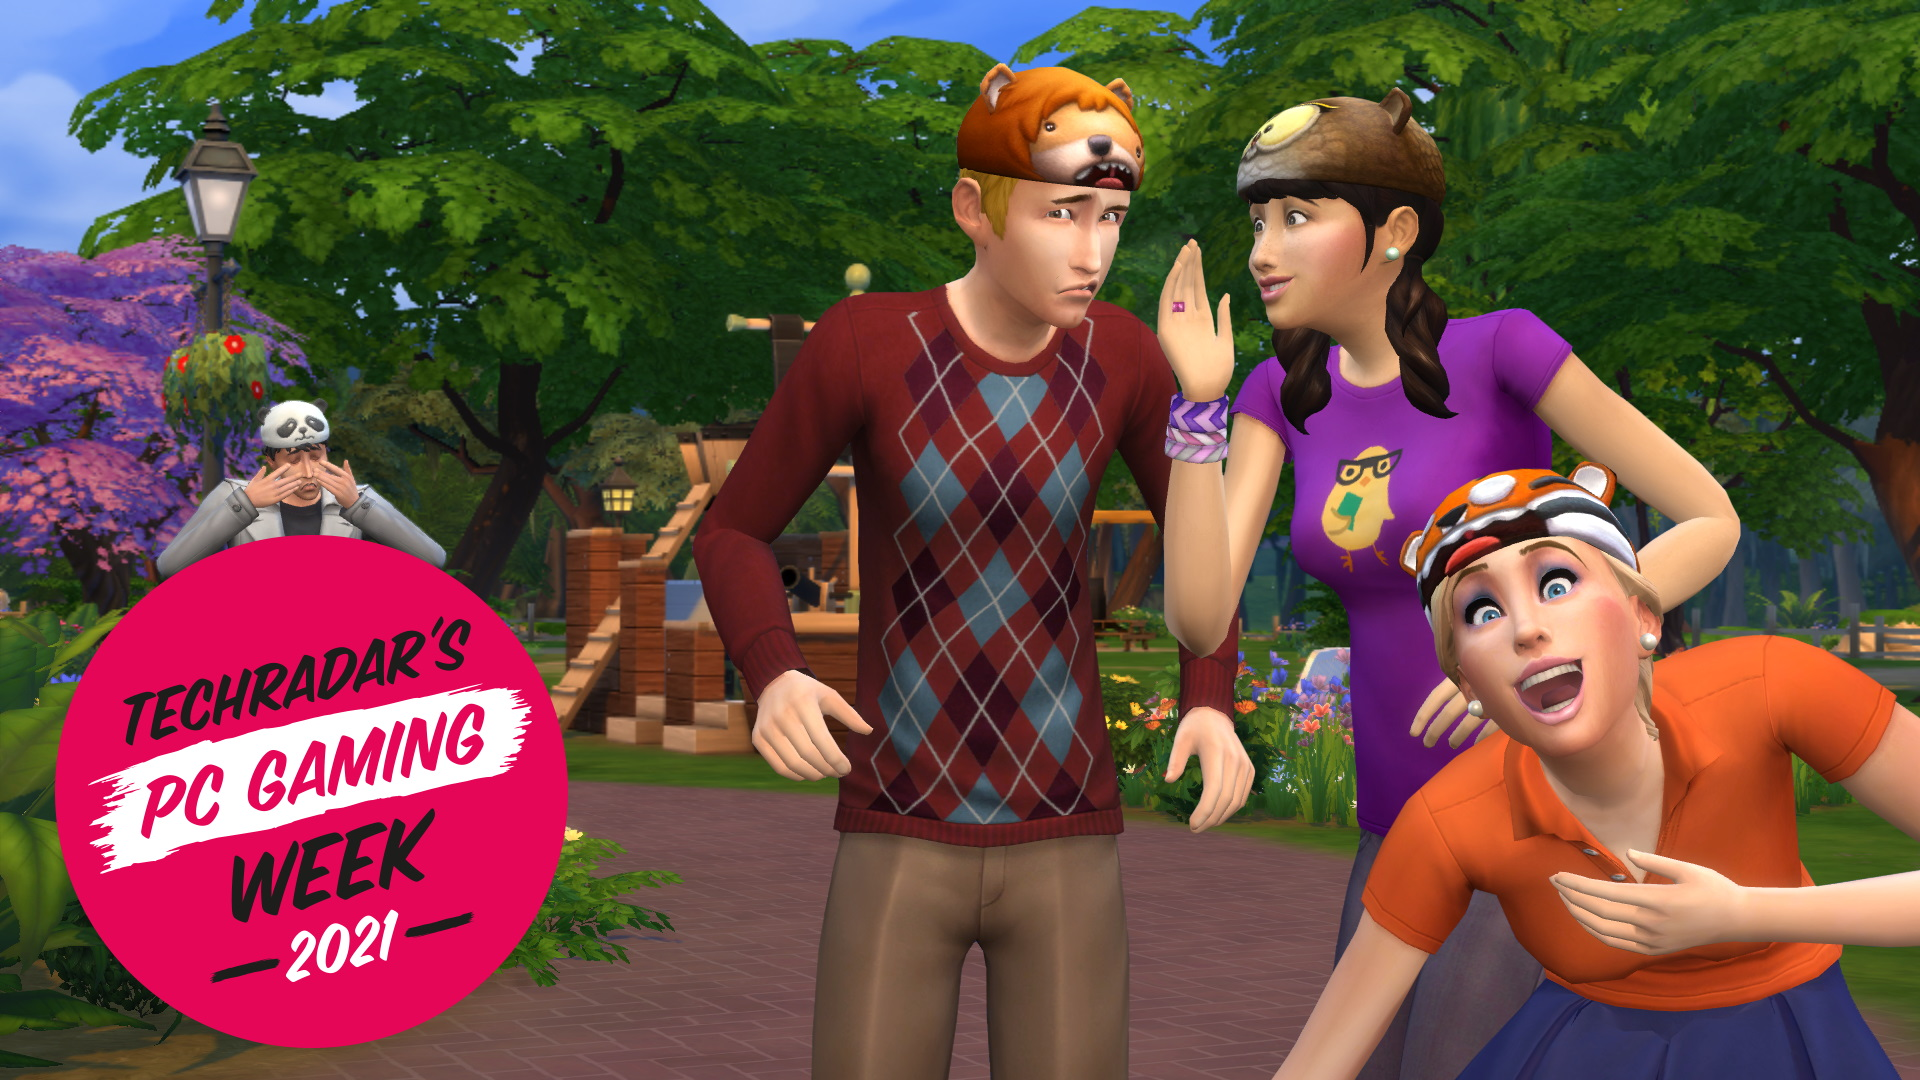 Screenshot of The Sims 4 with PC Gaming Week branding